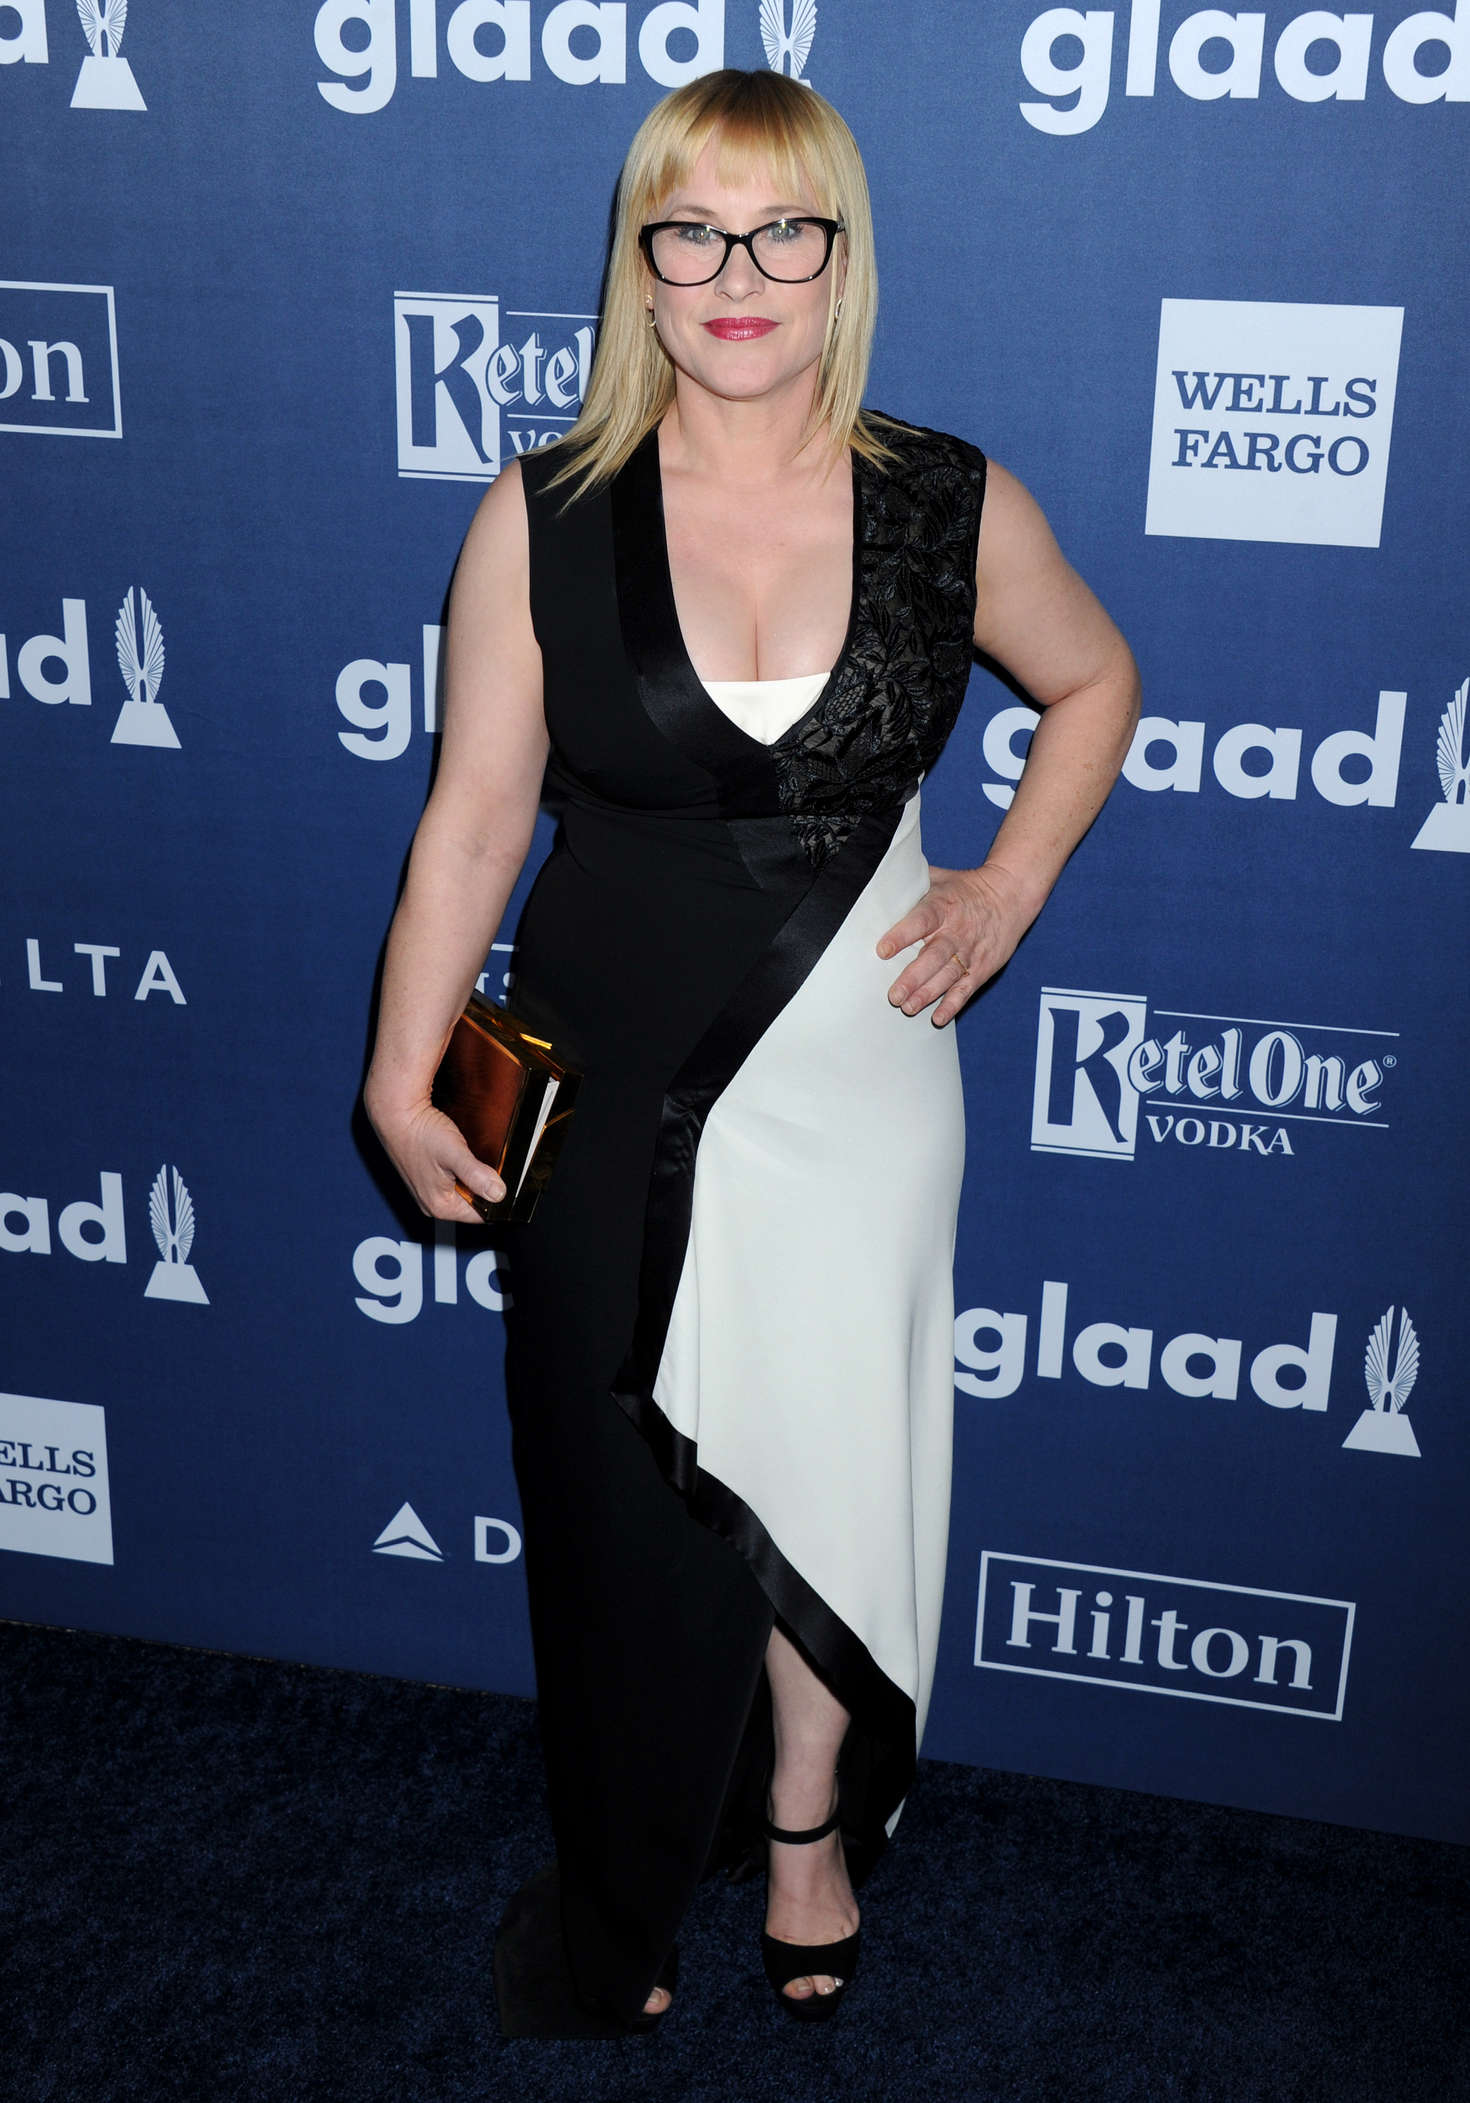 Patricia Arquette Annual GLAAD Media Awards in Beverly Hills